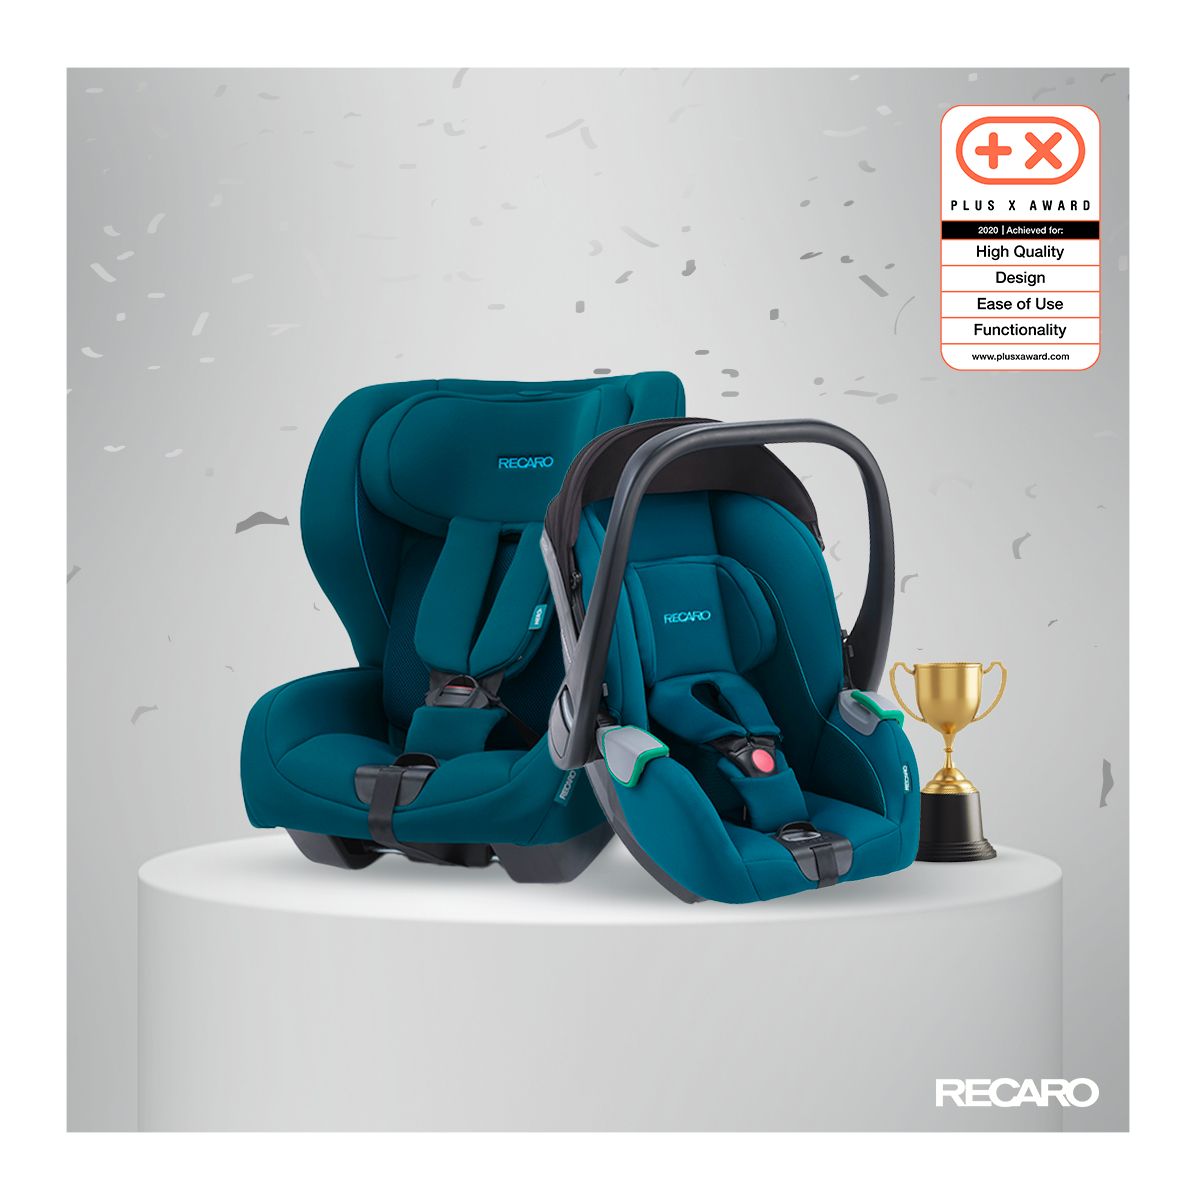 RECARO Avan and Kio win the Plus X Award 2020!